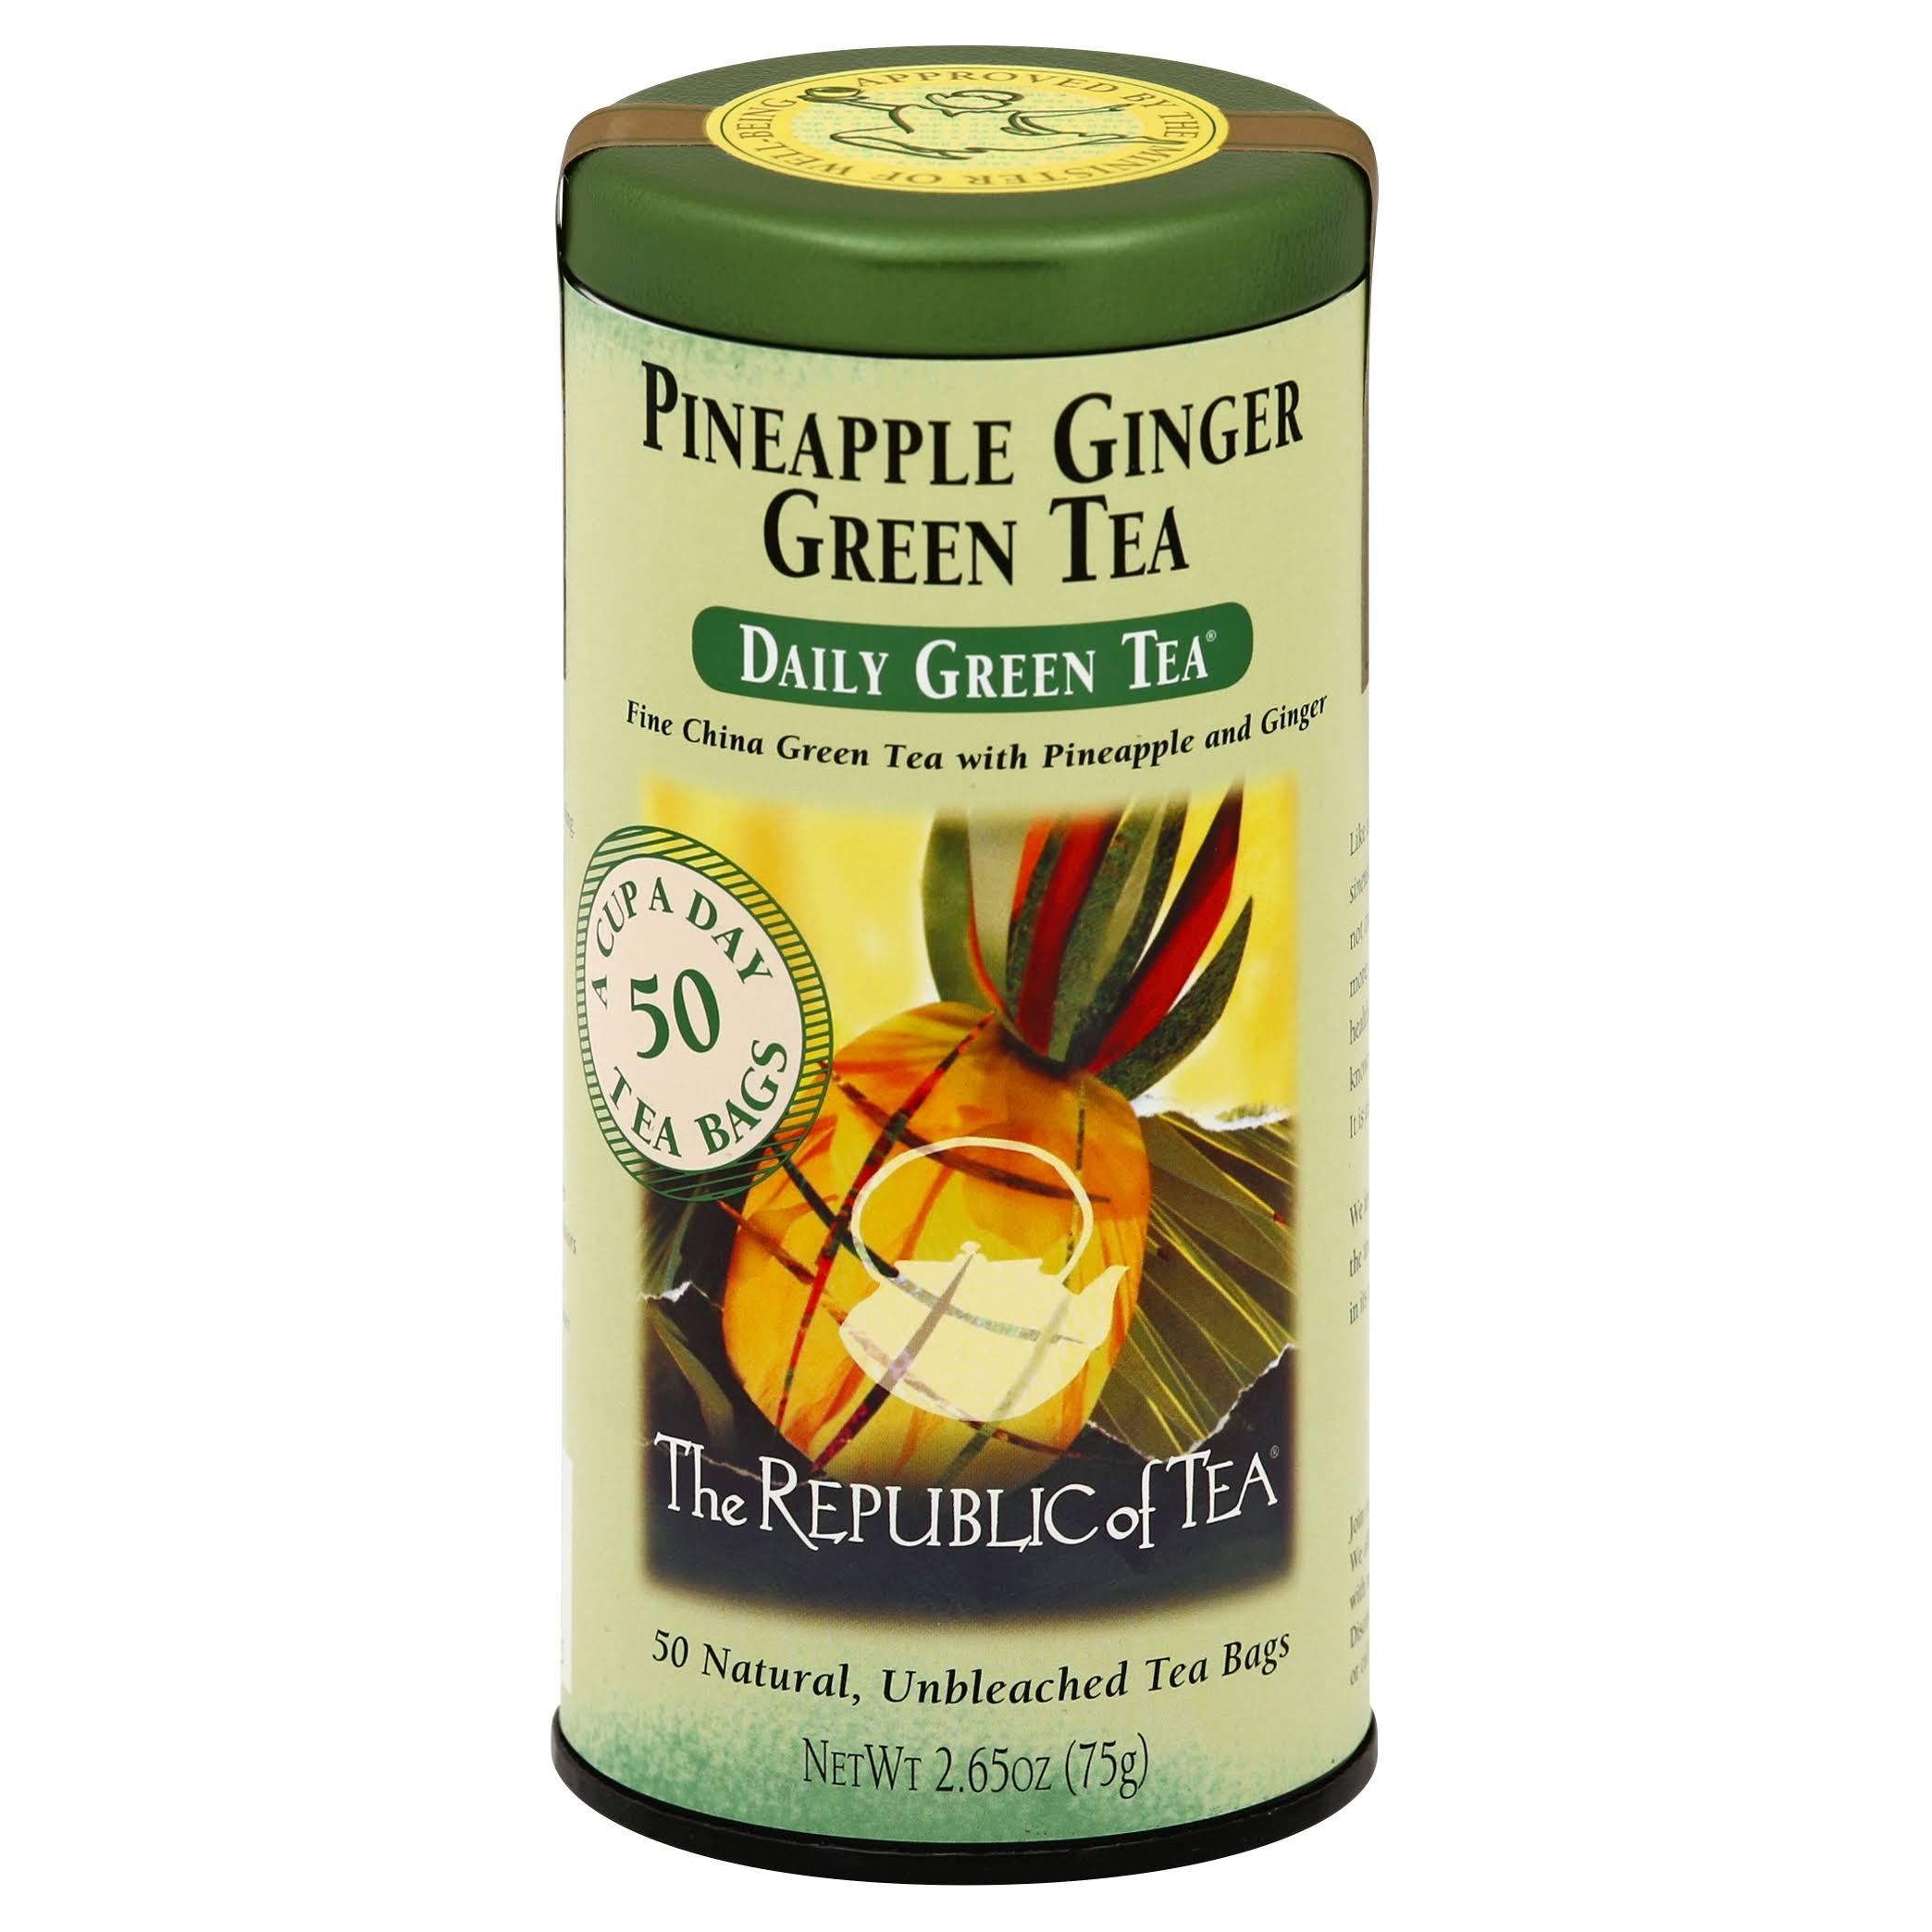 The Republic Of Tea Green Tea - Pineapple Ginger, 50 Tea Bags